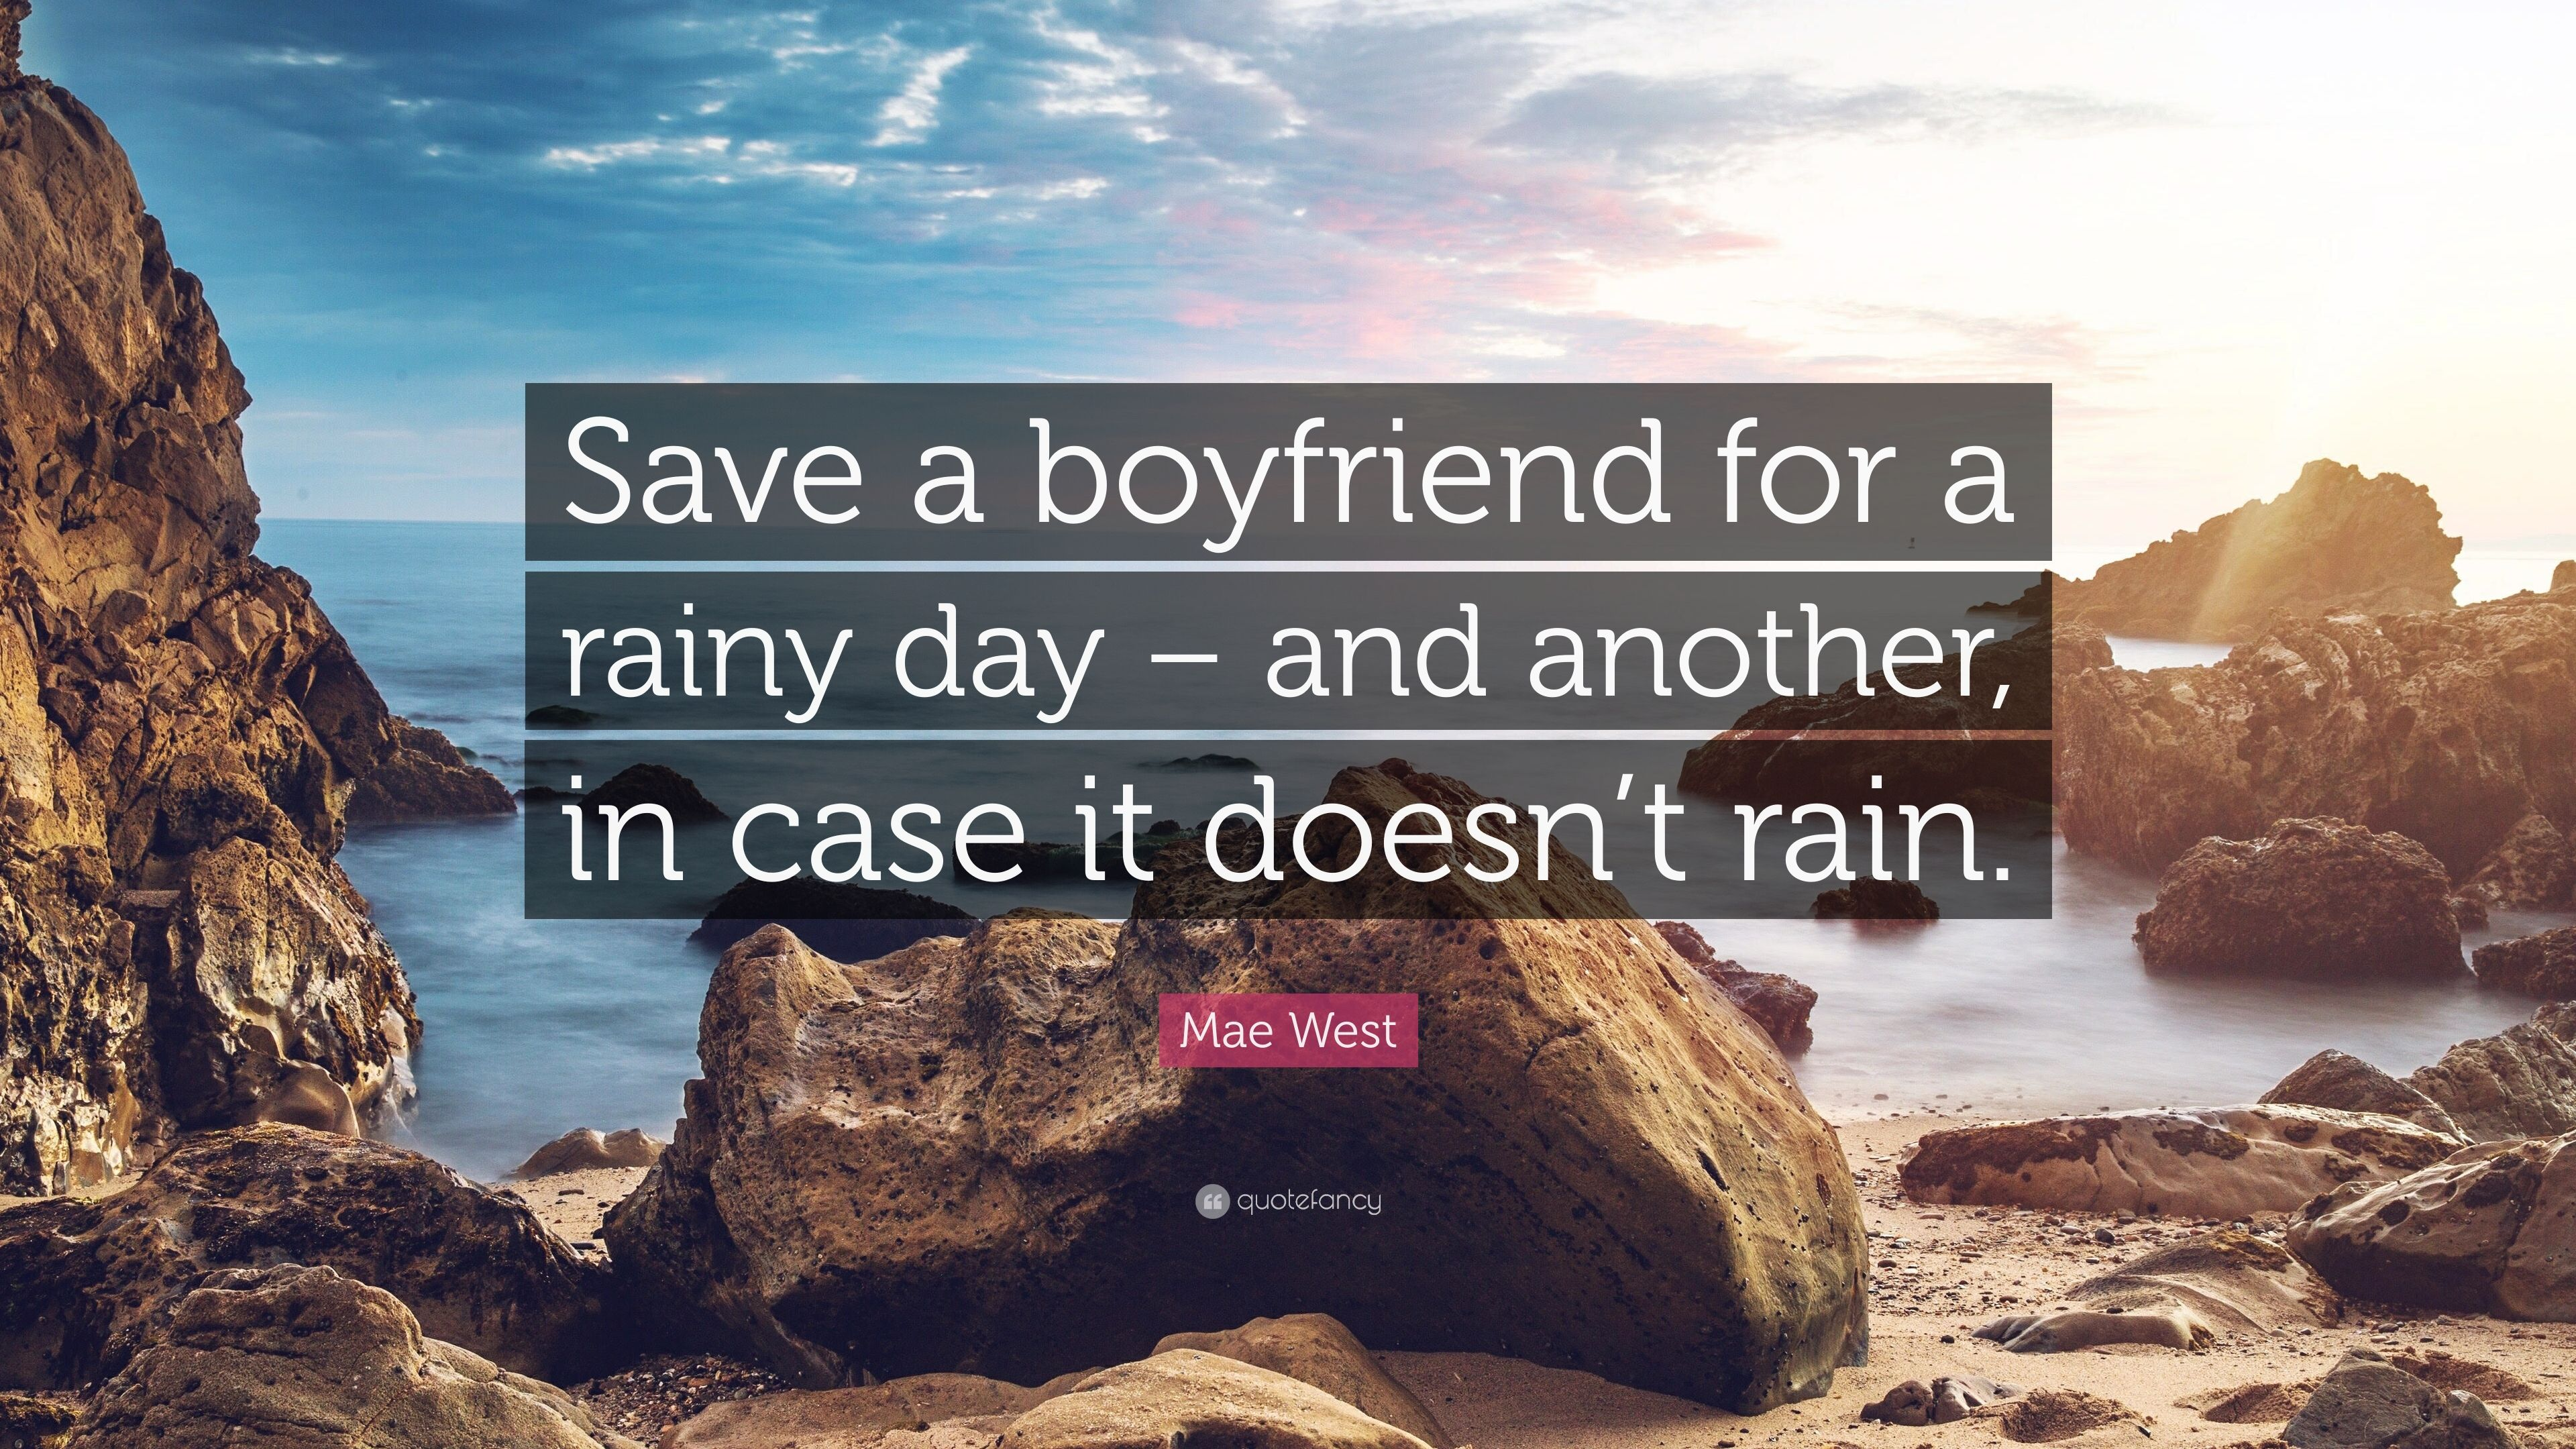 Marvelous Mae West Quote: U201cSave A Boyfriend For A Rainy Day U2013 And Another,